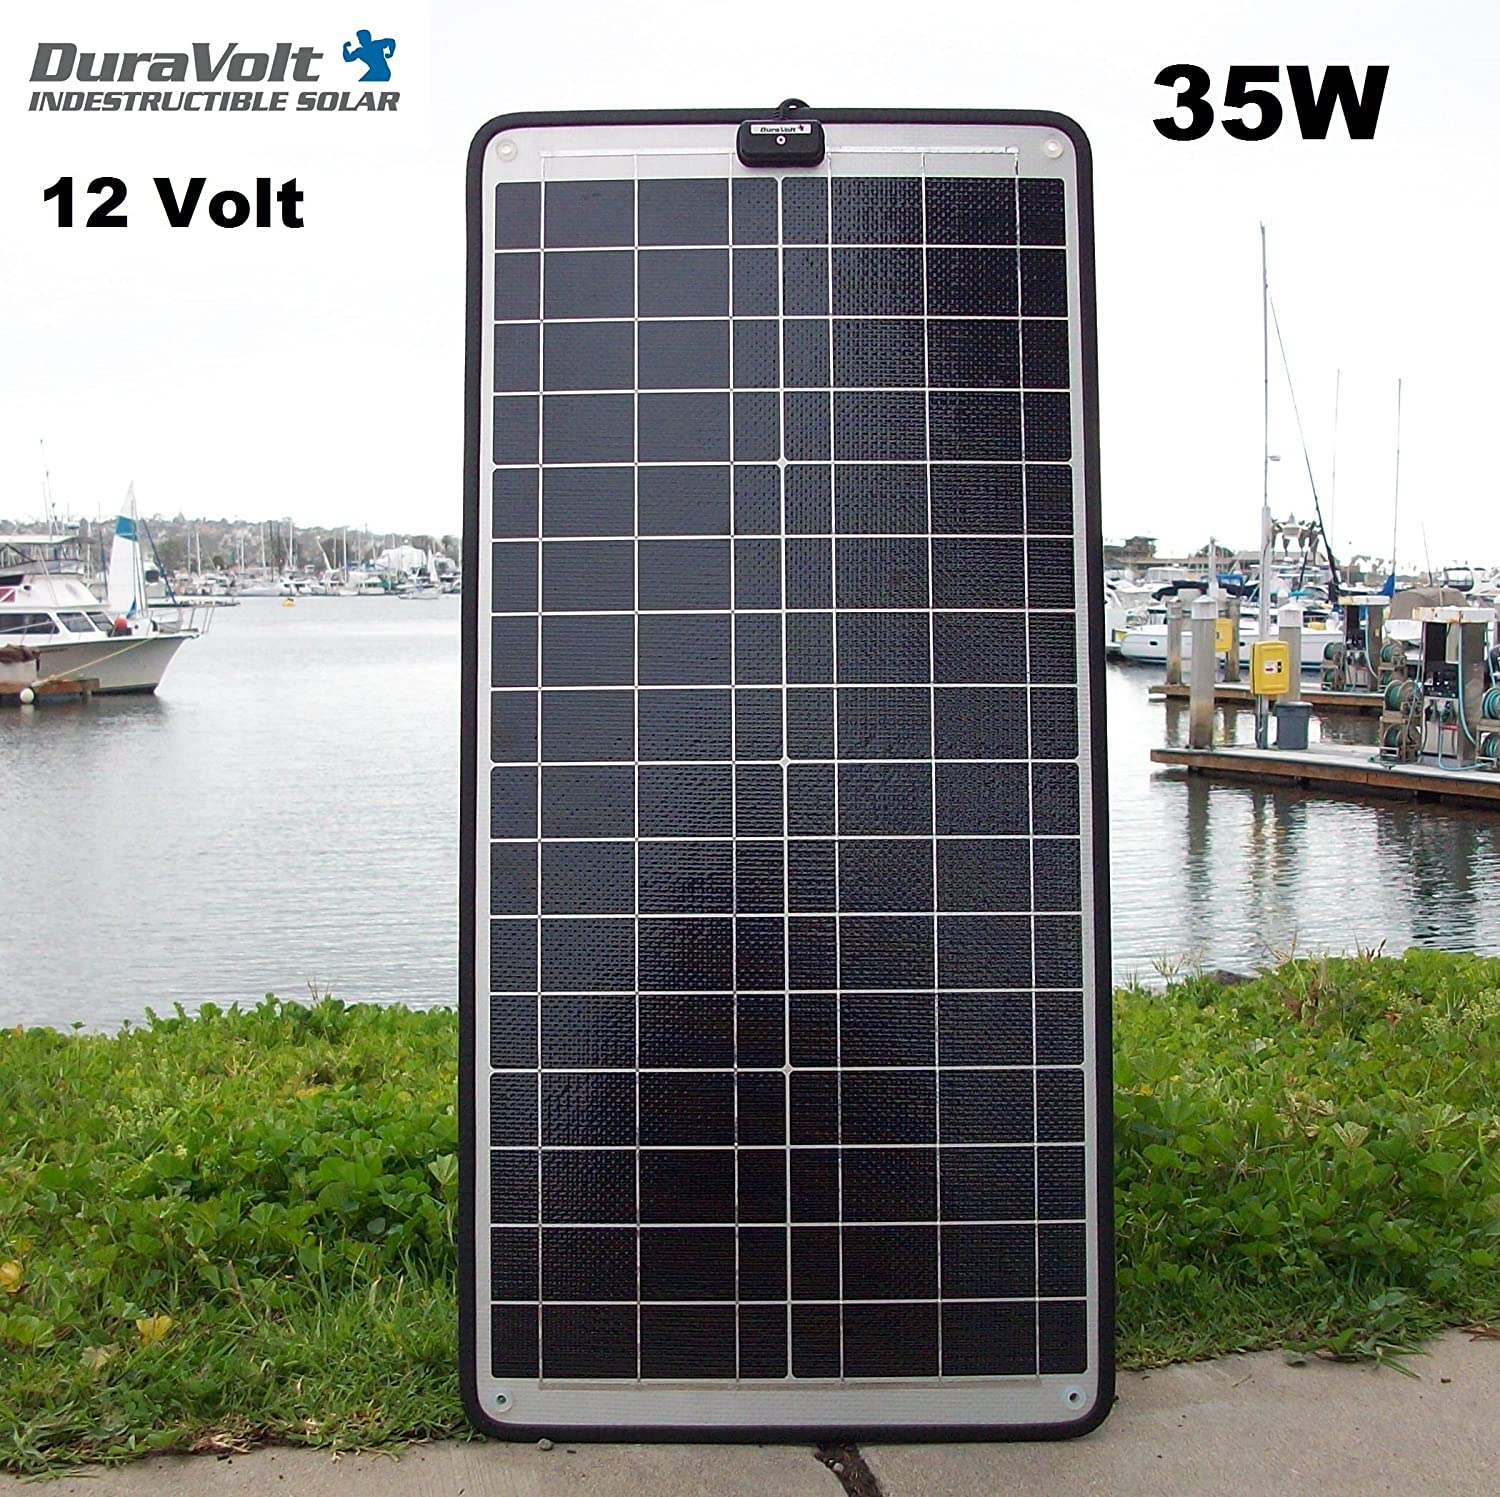 DuraVolt 12 Volt 2.0 Amp Solar Charger – 35.0 Watt – Plug Play – for Boats, Rv, Marine – Size 28.7 x 13.7 x .25